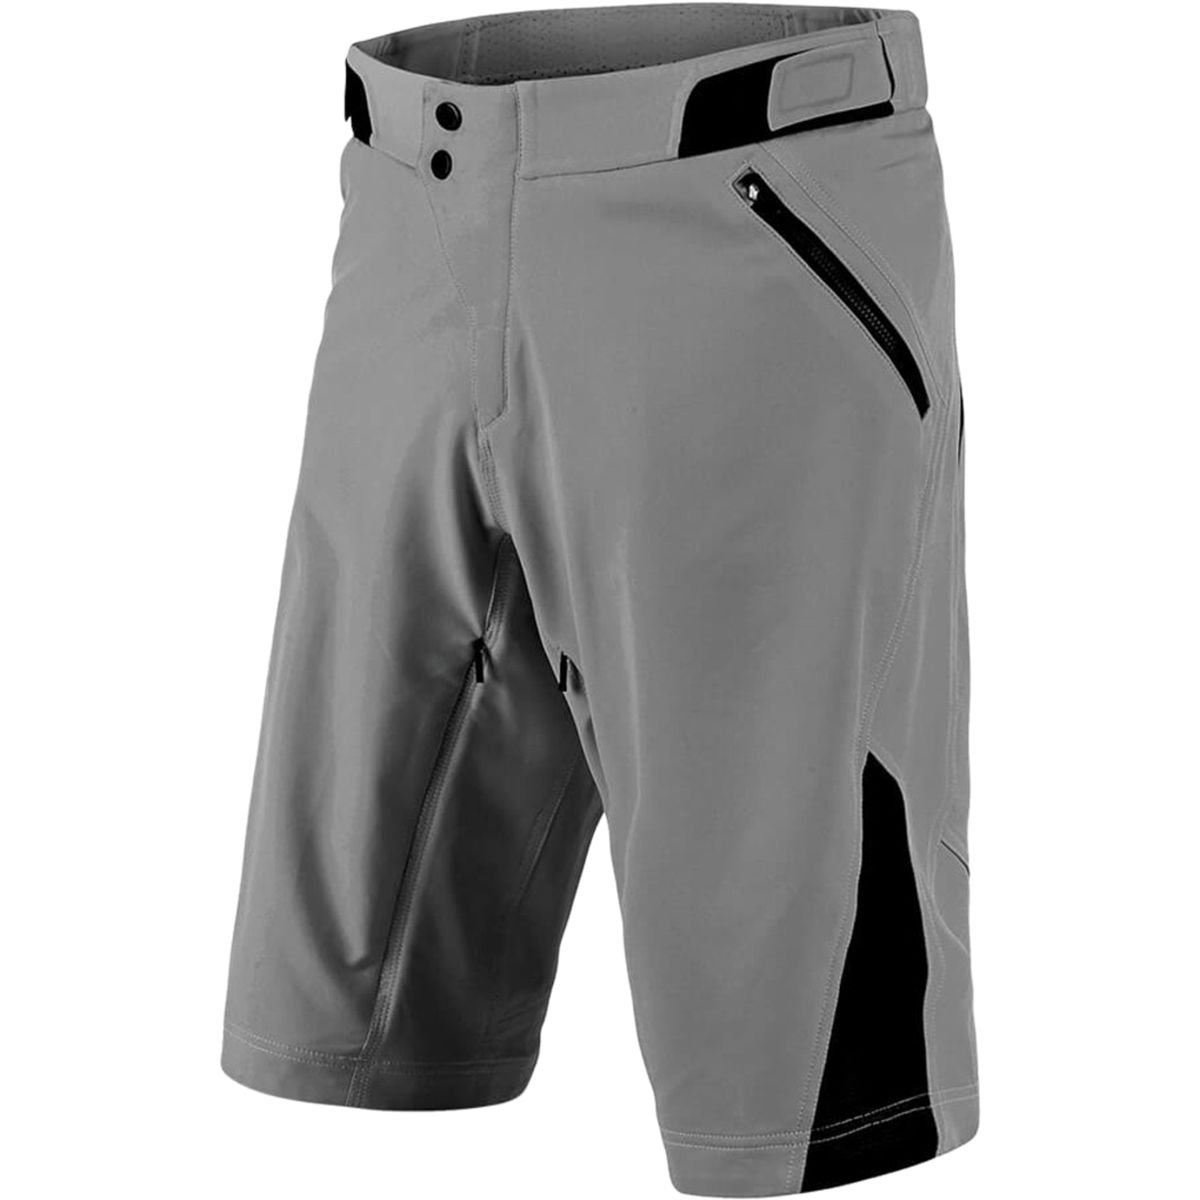 0ad9ad2fd Amazon.com  Troy Lee Designs Ruckus Men s BMX Shorts - Black  Sports    Outdoors